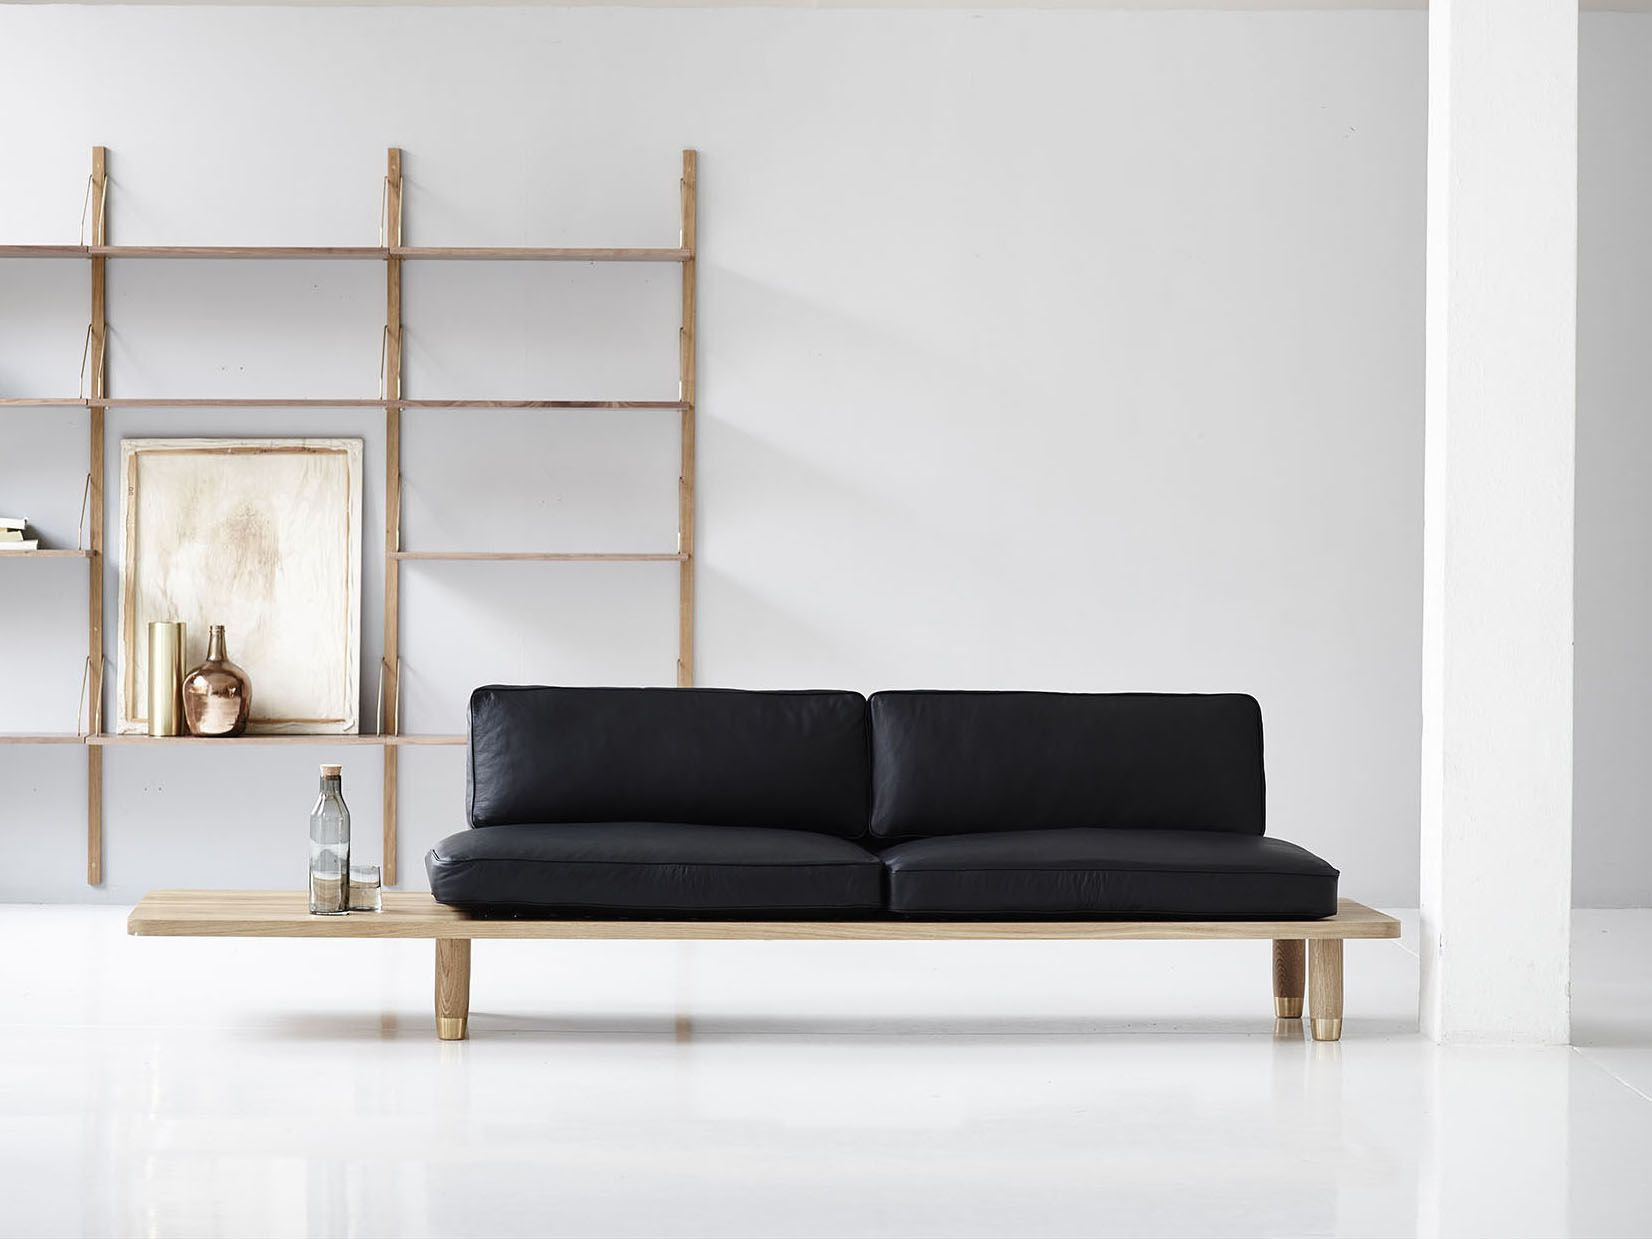 Http://cdn.furniturefashion.com/wp Content/uploads/2014/08/black Leather  Minimal Sofa Design | Home | Pinterest | Minimal And Interiors